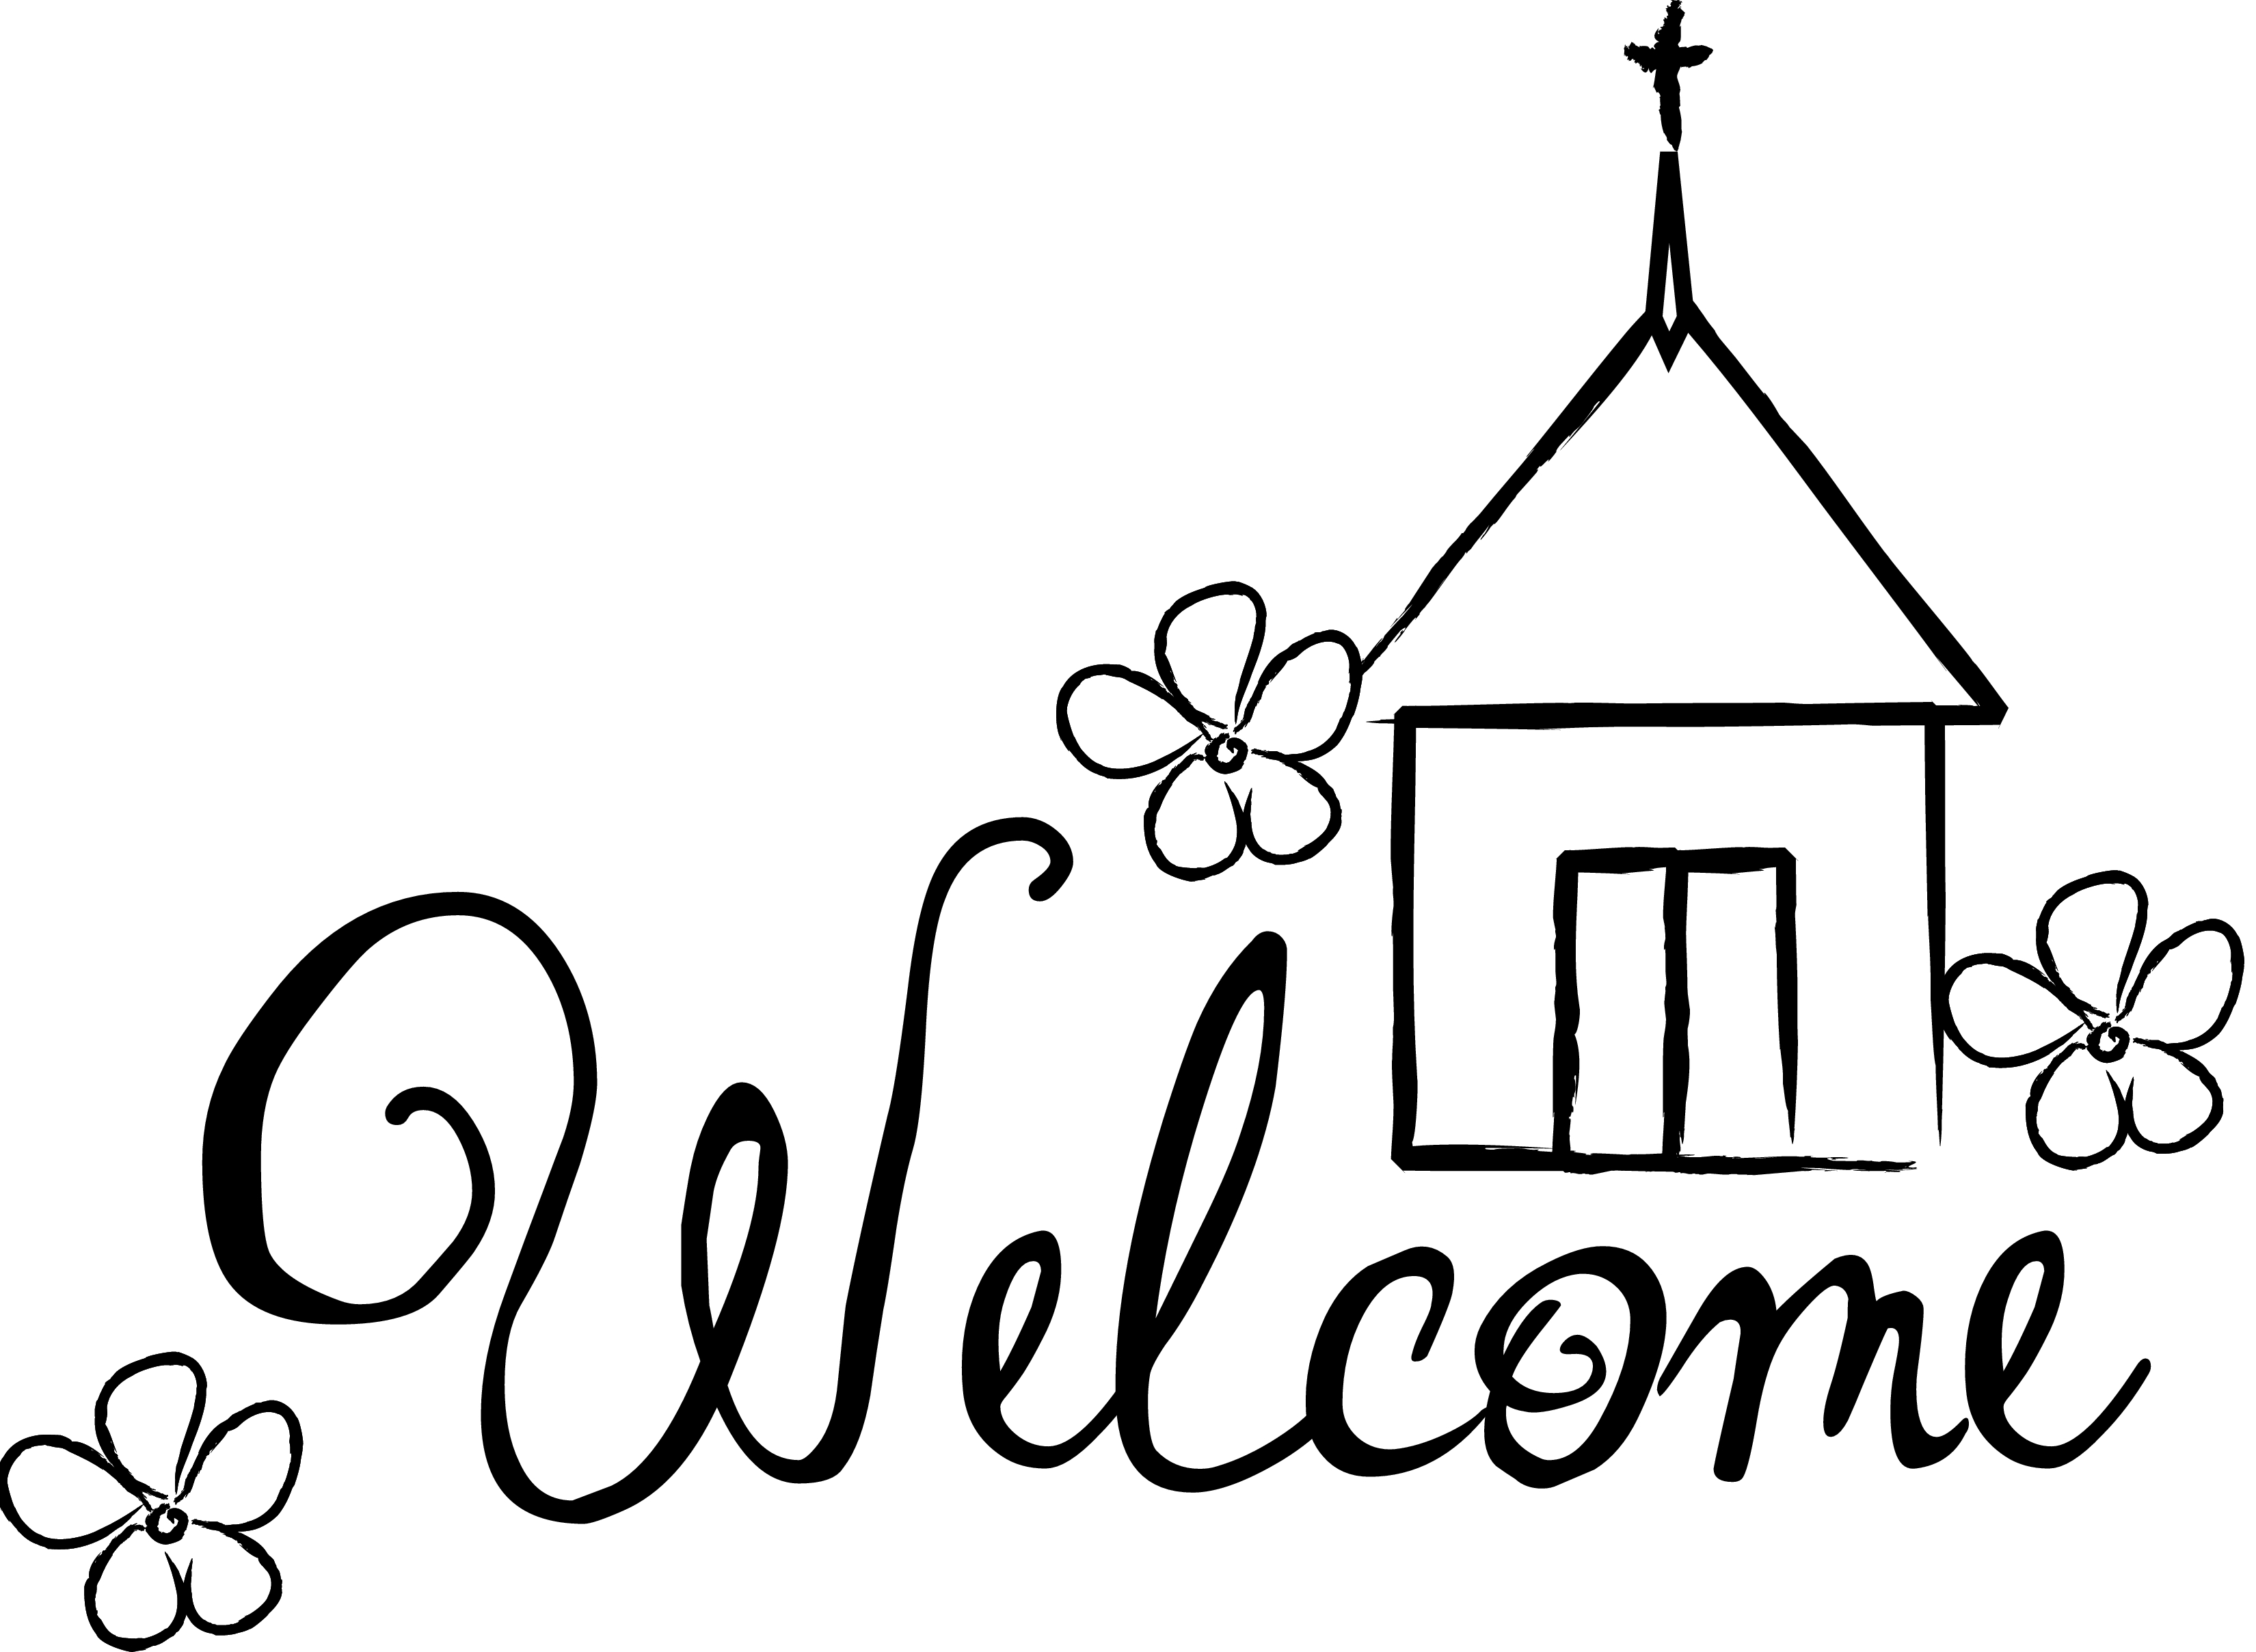 Free Christian Cliparts Welcome Download Free Clip Art